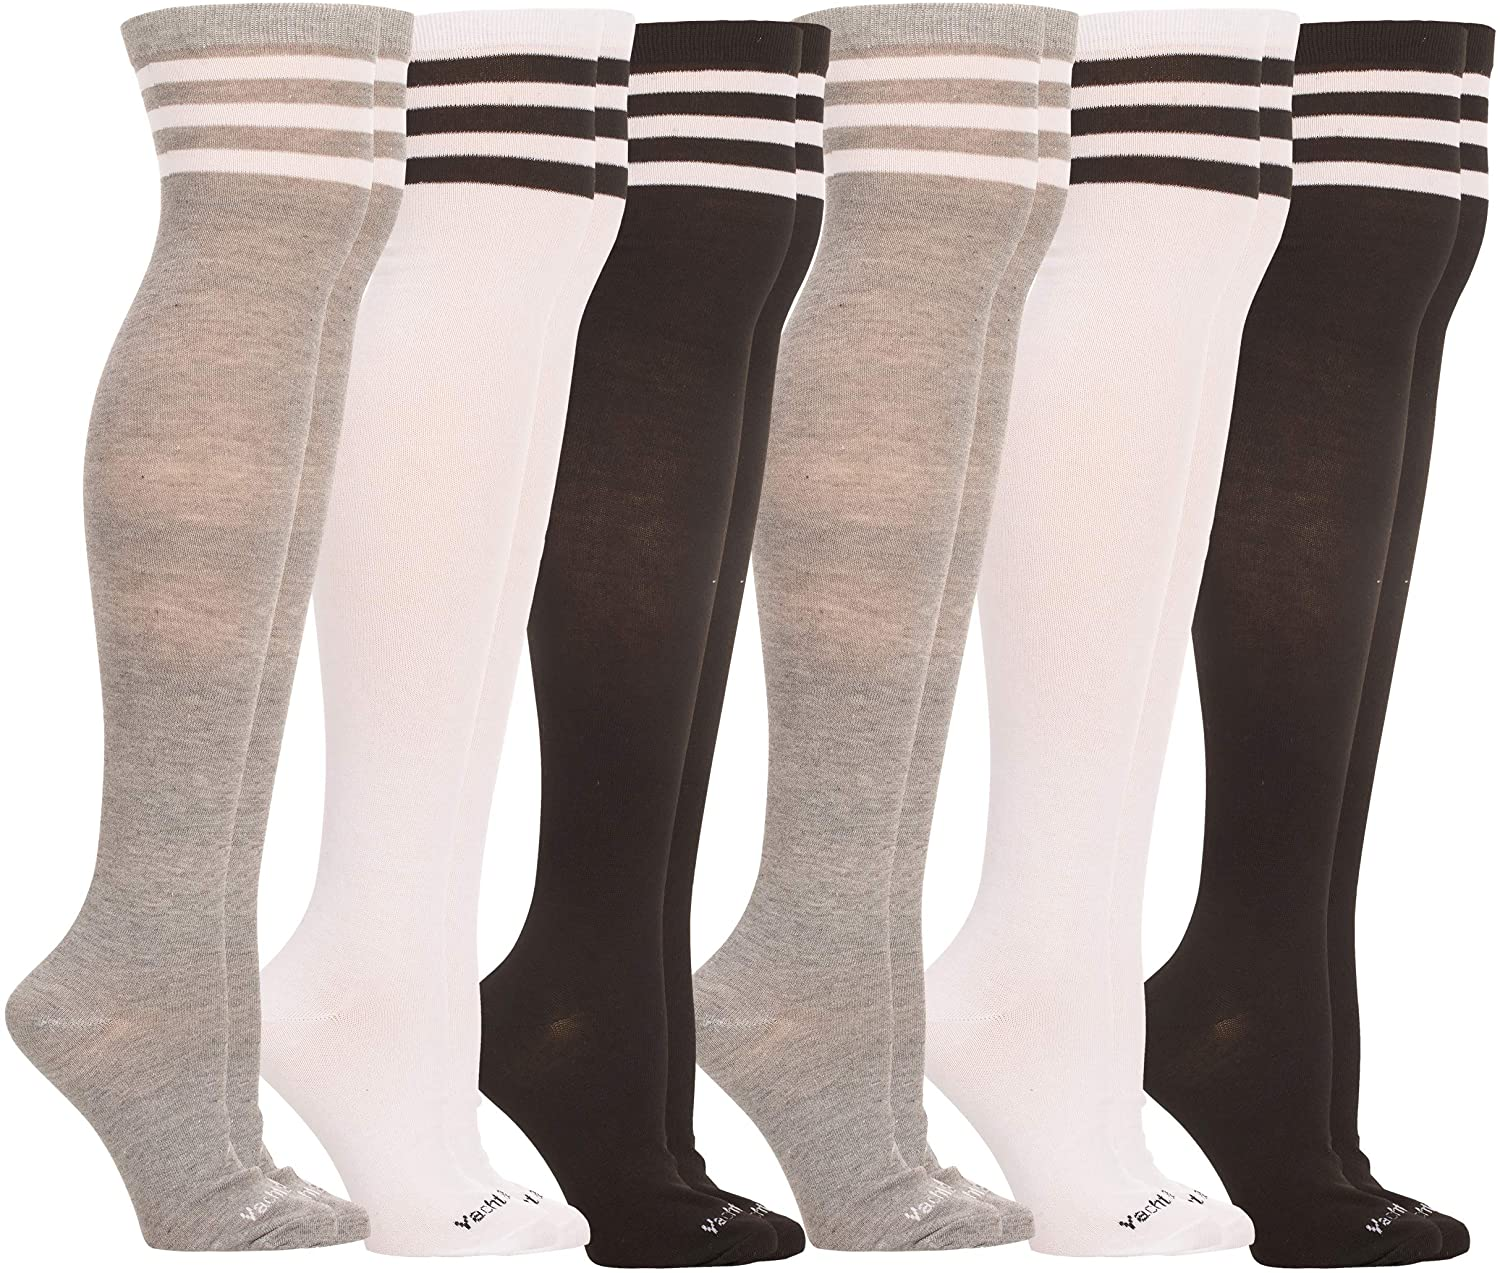 Yacht & Smith Womens Over the Knee Socks, Assorted Premium Soft, Cotton Colorful Patterned